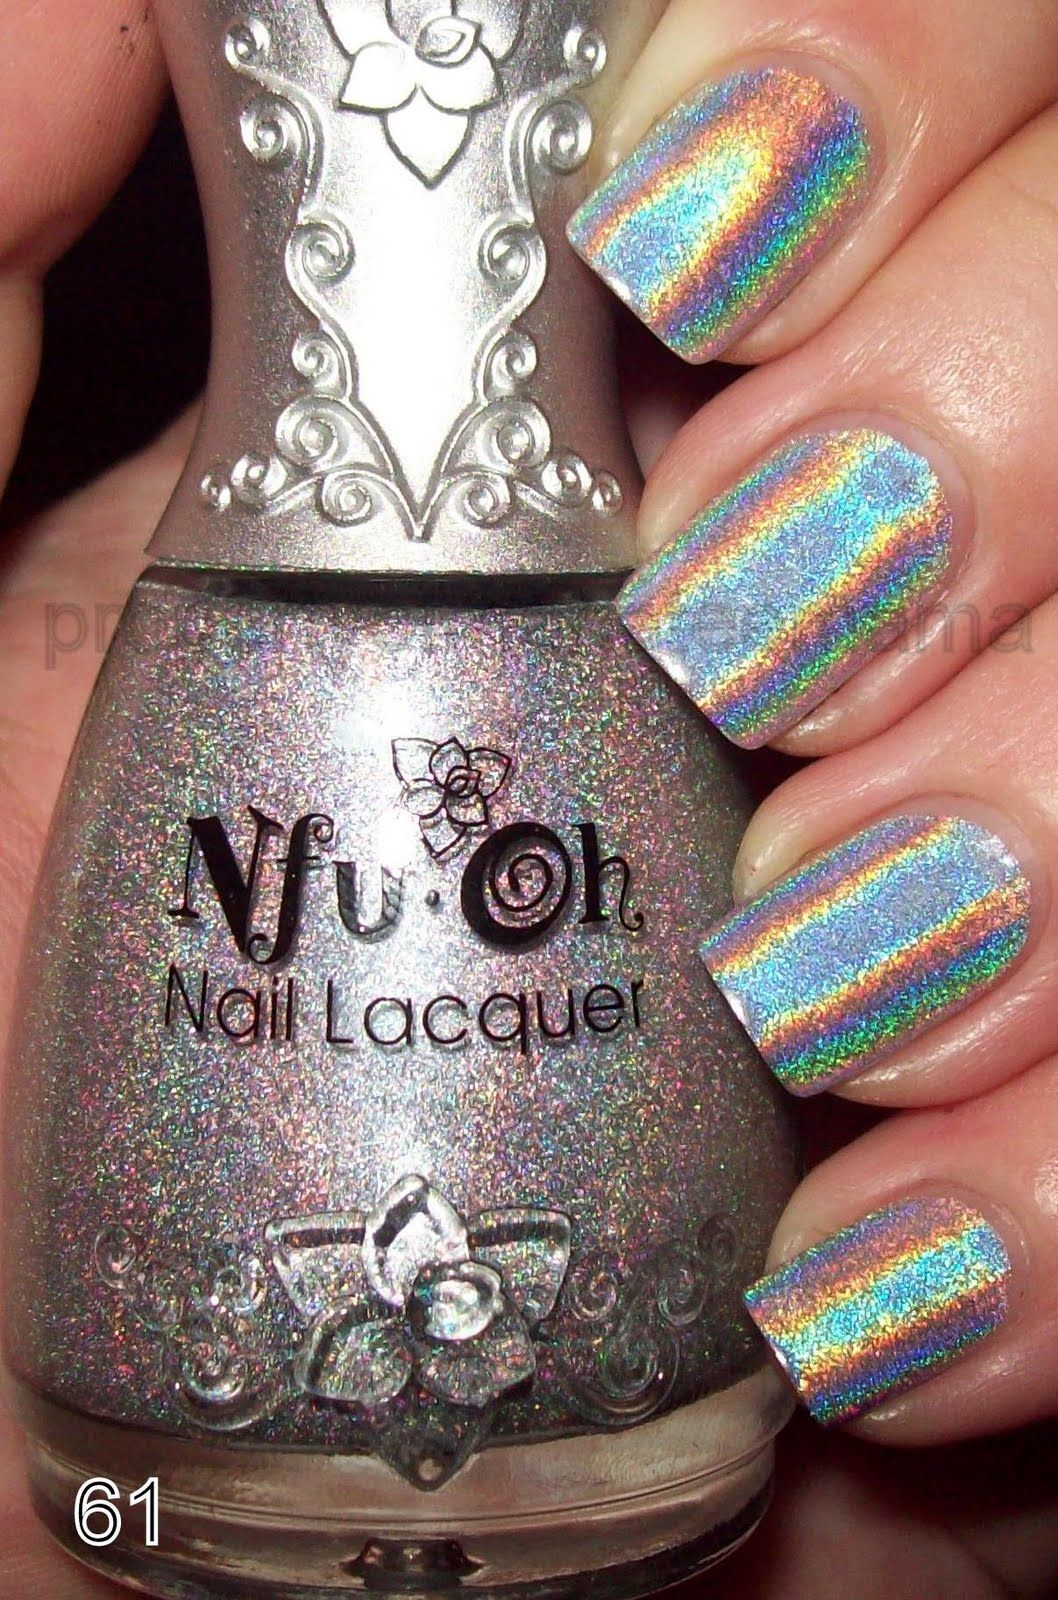 The Manicured Manatee: Nfu-Oh Swatches   Nail envy   Pinterest ...